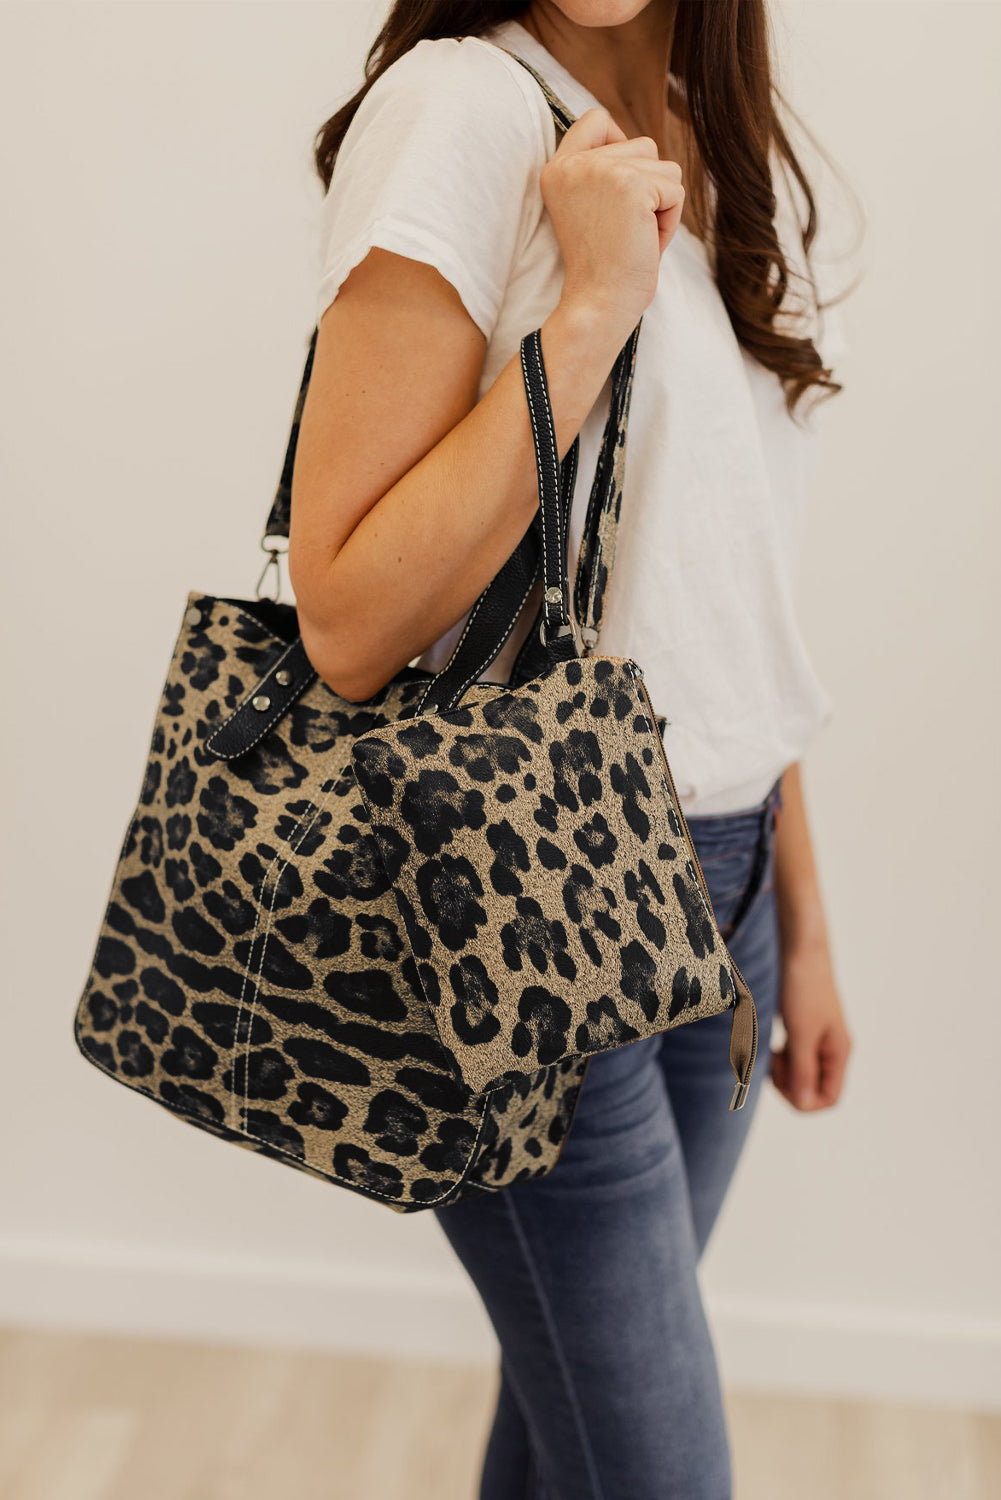 Brown Leopard Shoulder Bag and Clutch Bags Discount Designer Fashion Clothes Shoes Bags Women Men Kids Children Black Owned Business